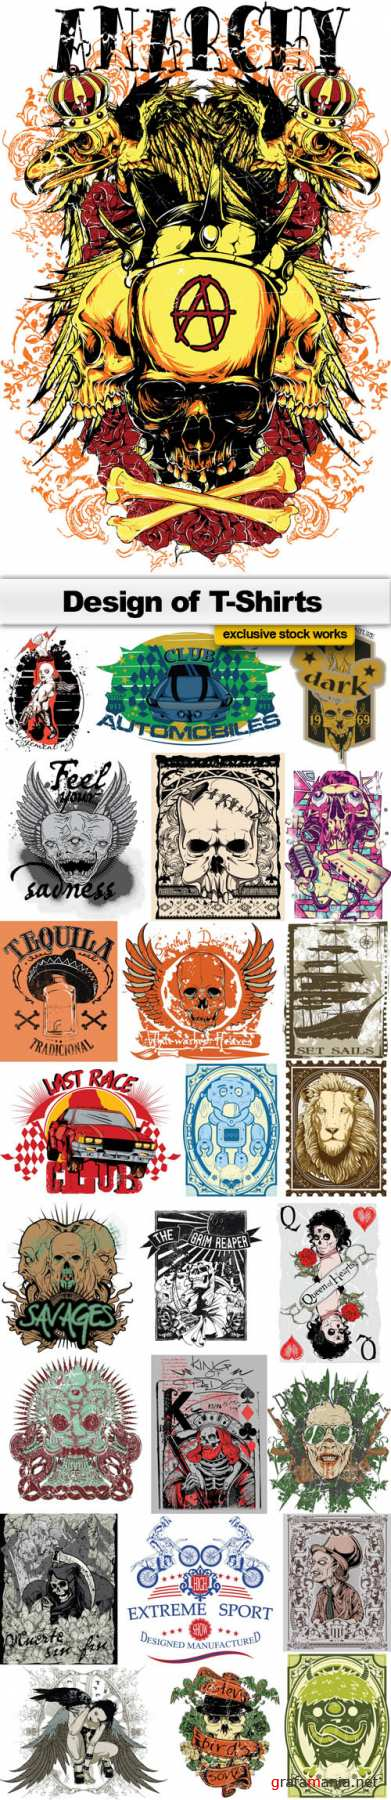 Design of T-Shirts Collection